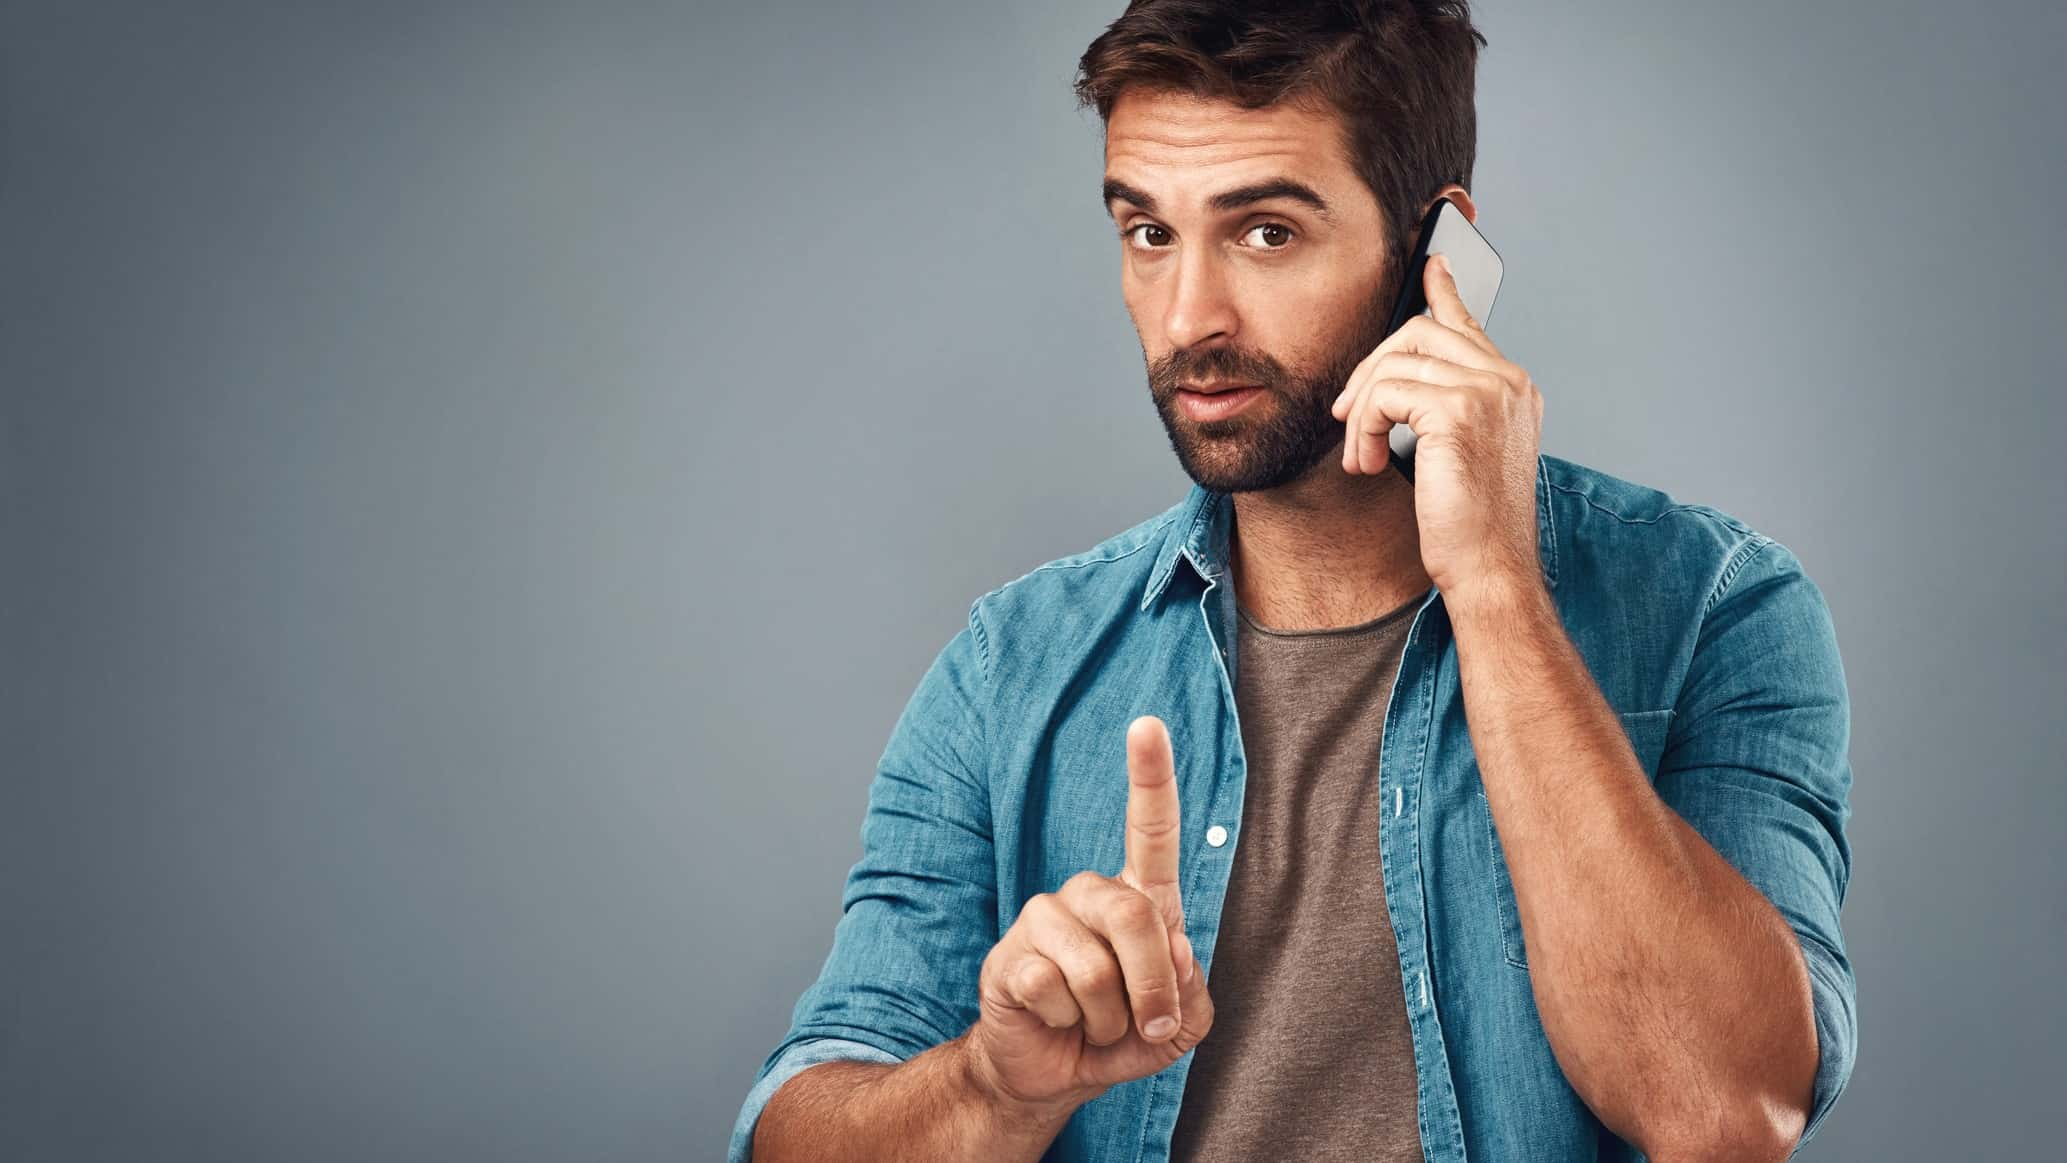 A man on a phone call points his finger, indicating a halt in trading on the ASX share market